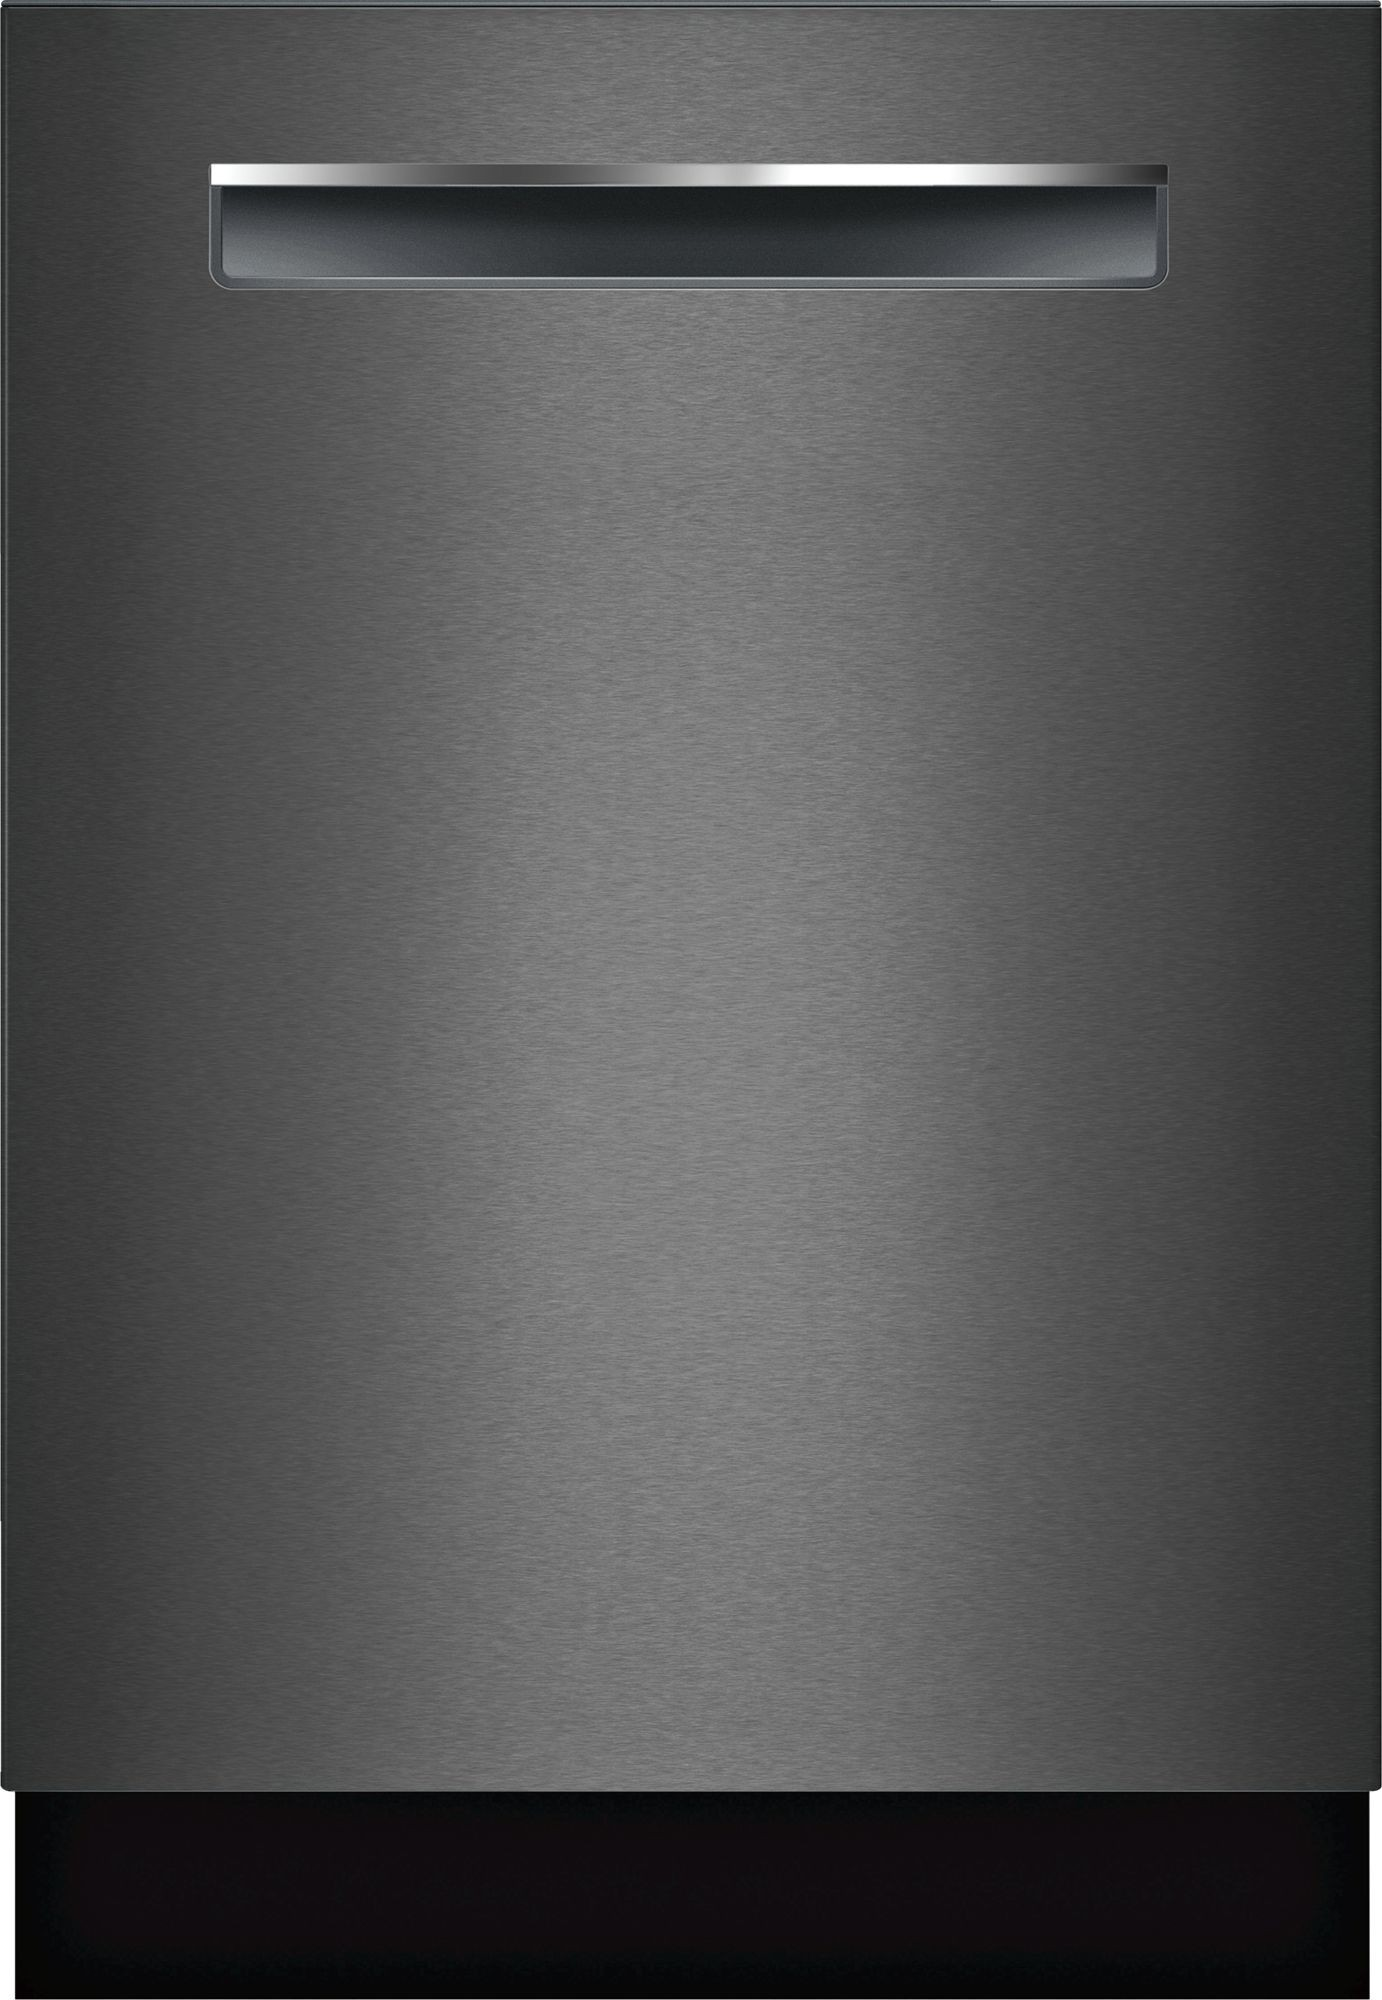 Bosch Shpm78w54n 24 Inch Fully Integrated Dishwasher With 16 Place Setting Capacity 6 Wash Cycles Silence Rating Of 42 Dba Flexible 3rd Rack Rackmatic Easyglide Infolight Aquastop Leak Protection Nsf Sanitize And